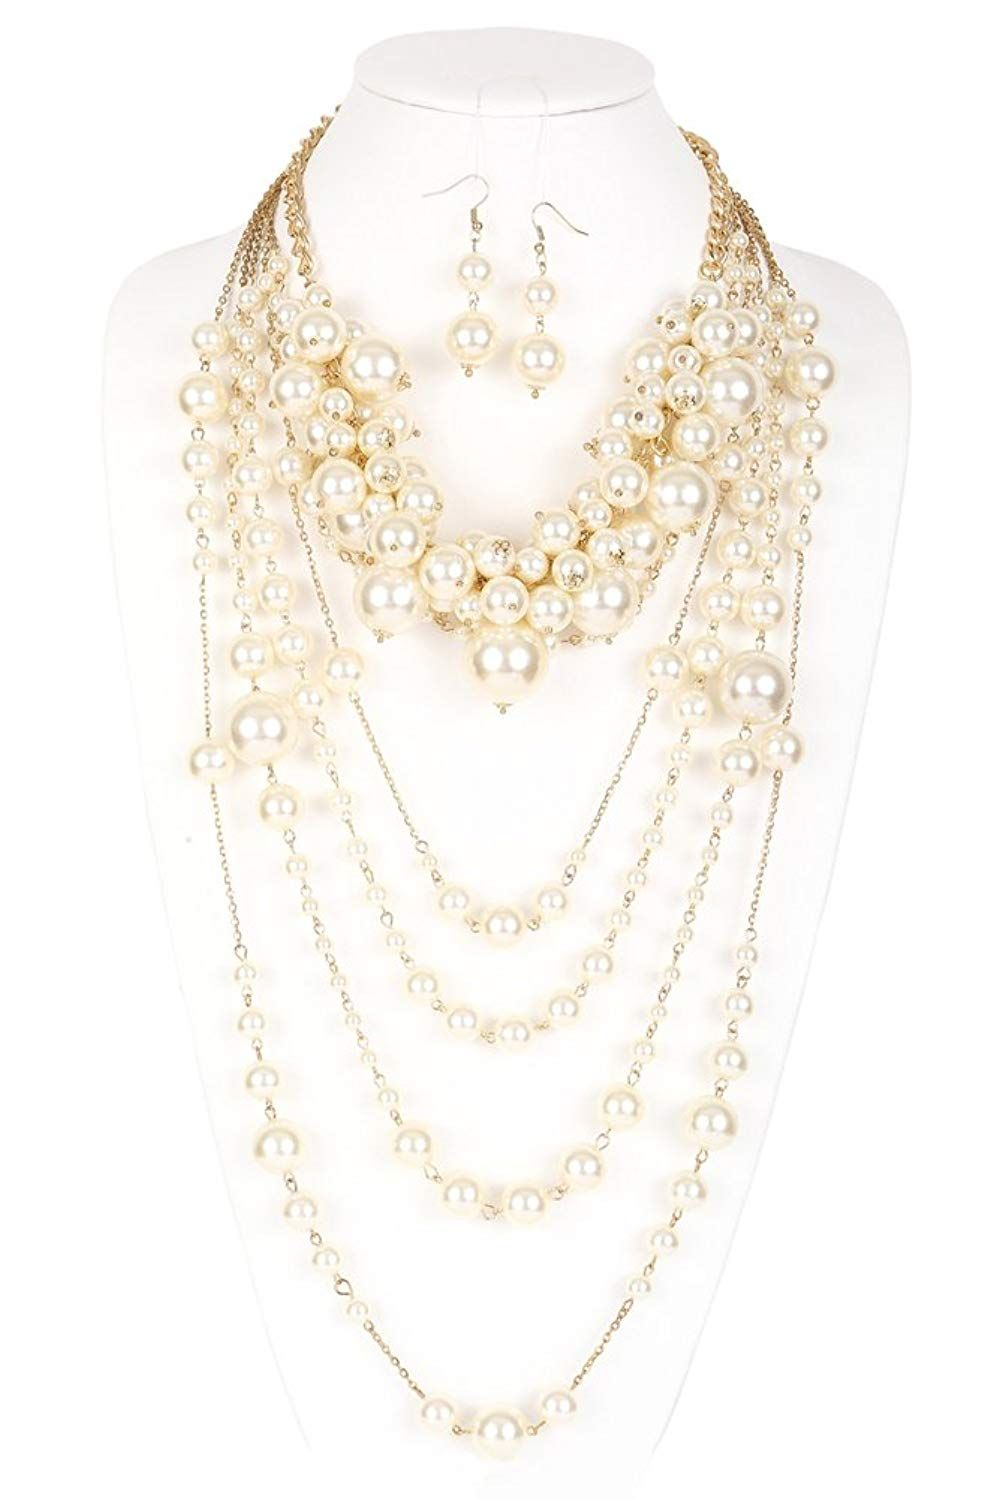 Amelia Multi Functional Simulated Pearl Statement Necklace And Earrings Set Nice Of Your Presence To Have Dropped By To View Our Statement Necklace